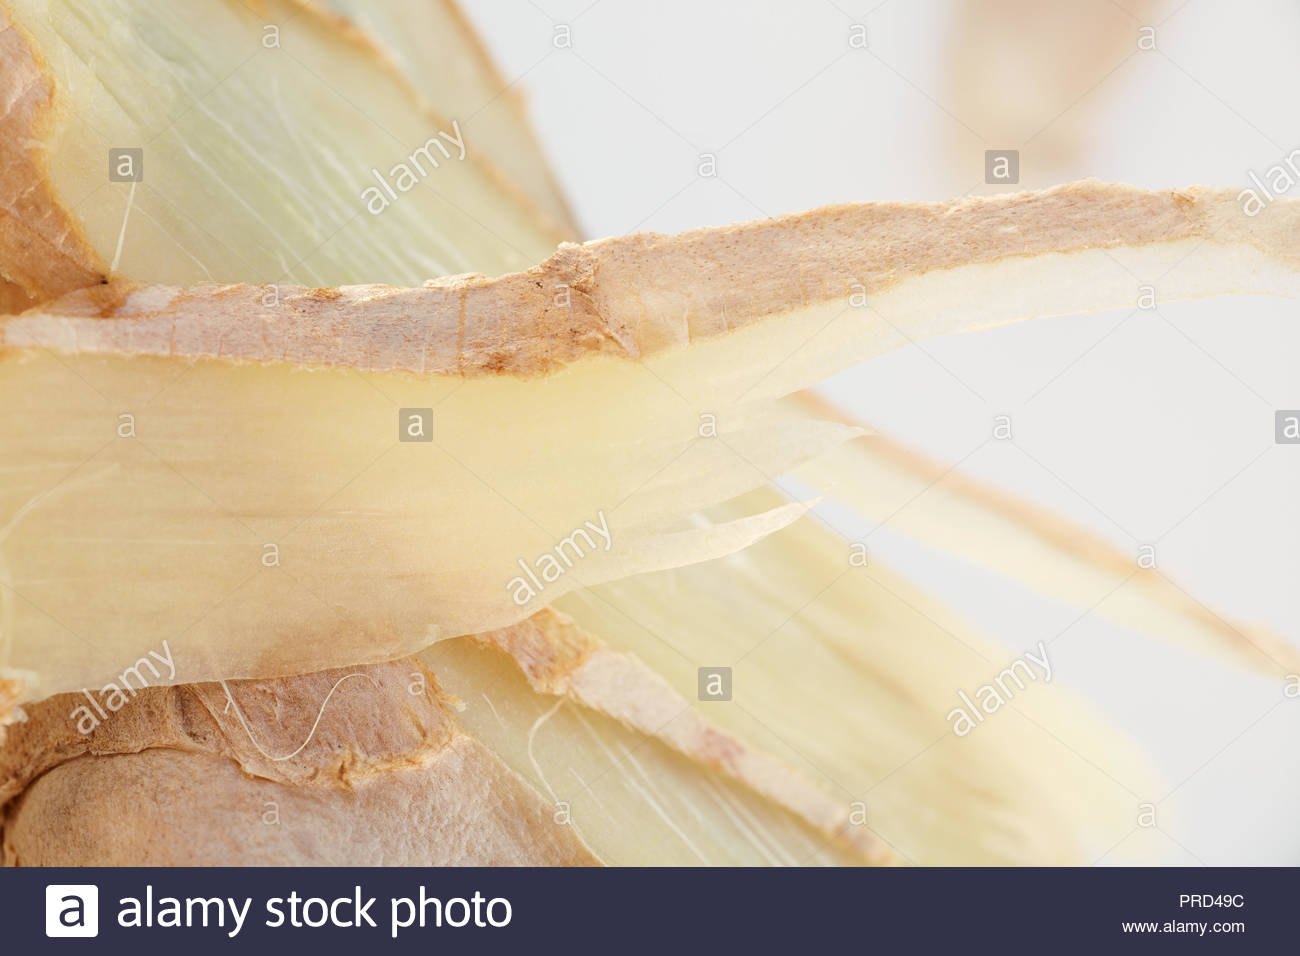 Fresh ginger, with rind still on, sliced and shot up close with a macro lens. - Stock Image